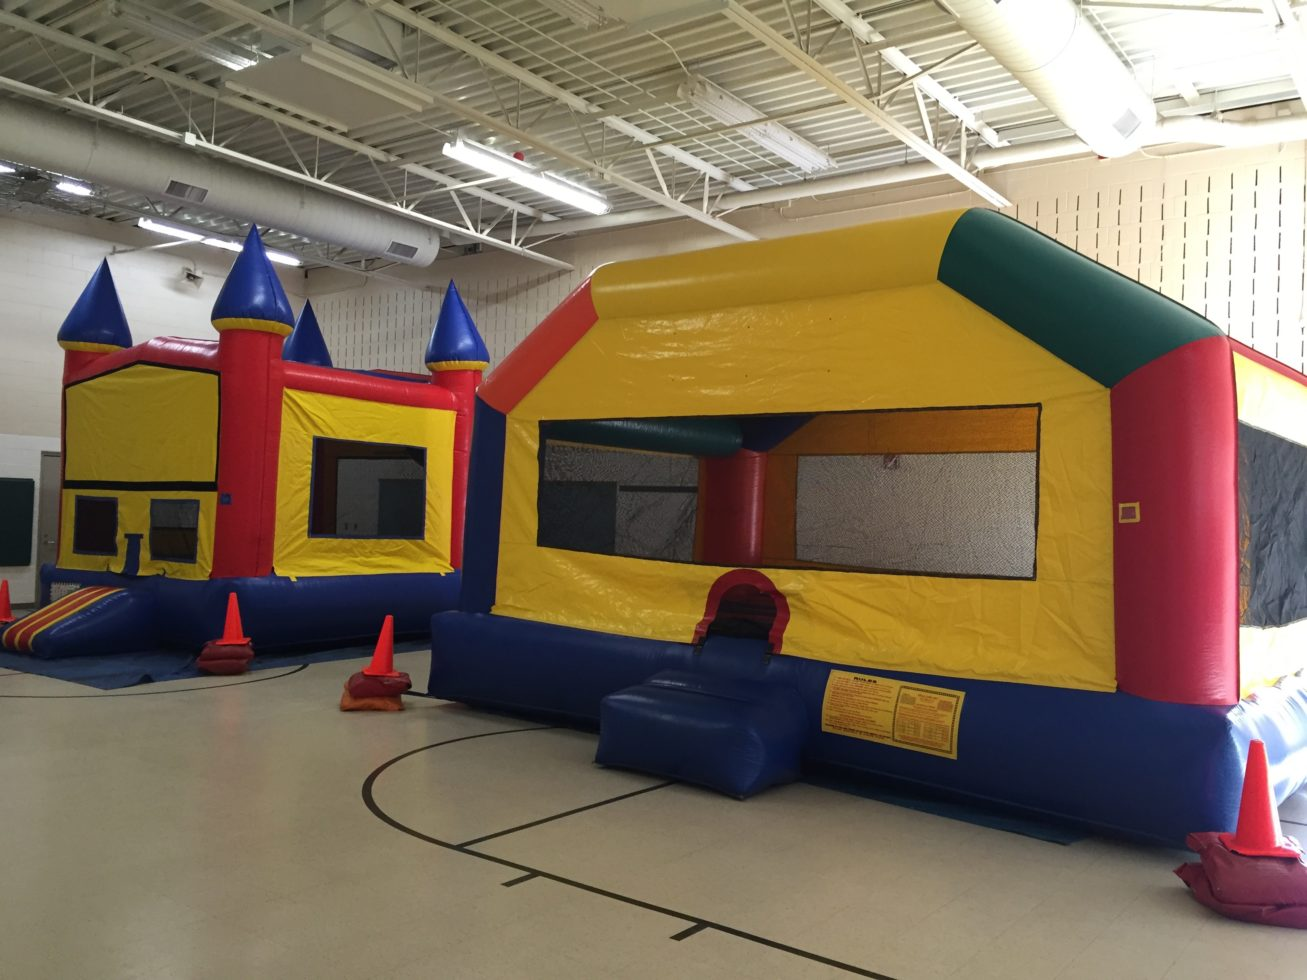 Funhouse and mod castle setup inside gymnasium